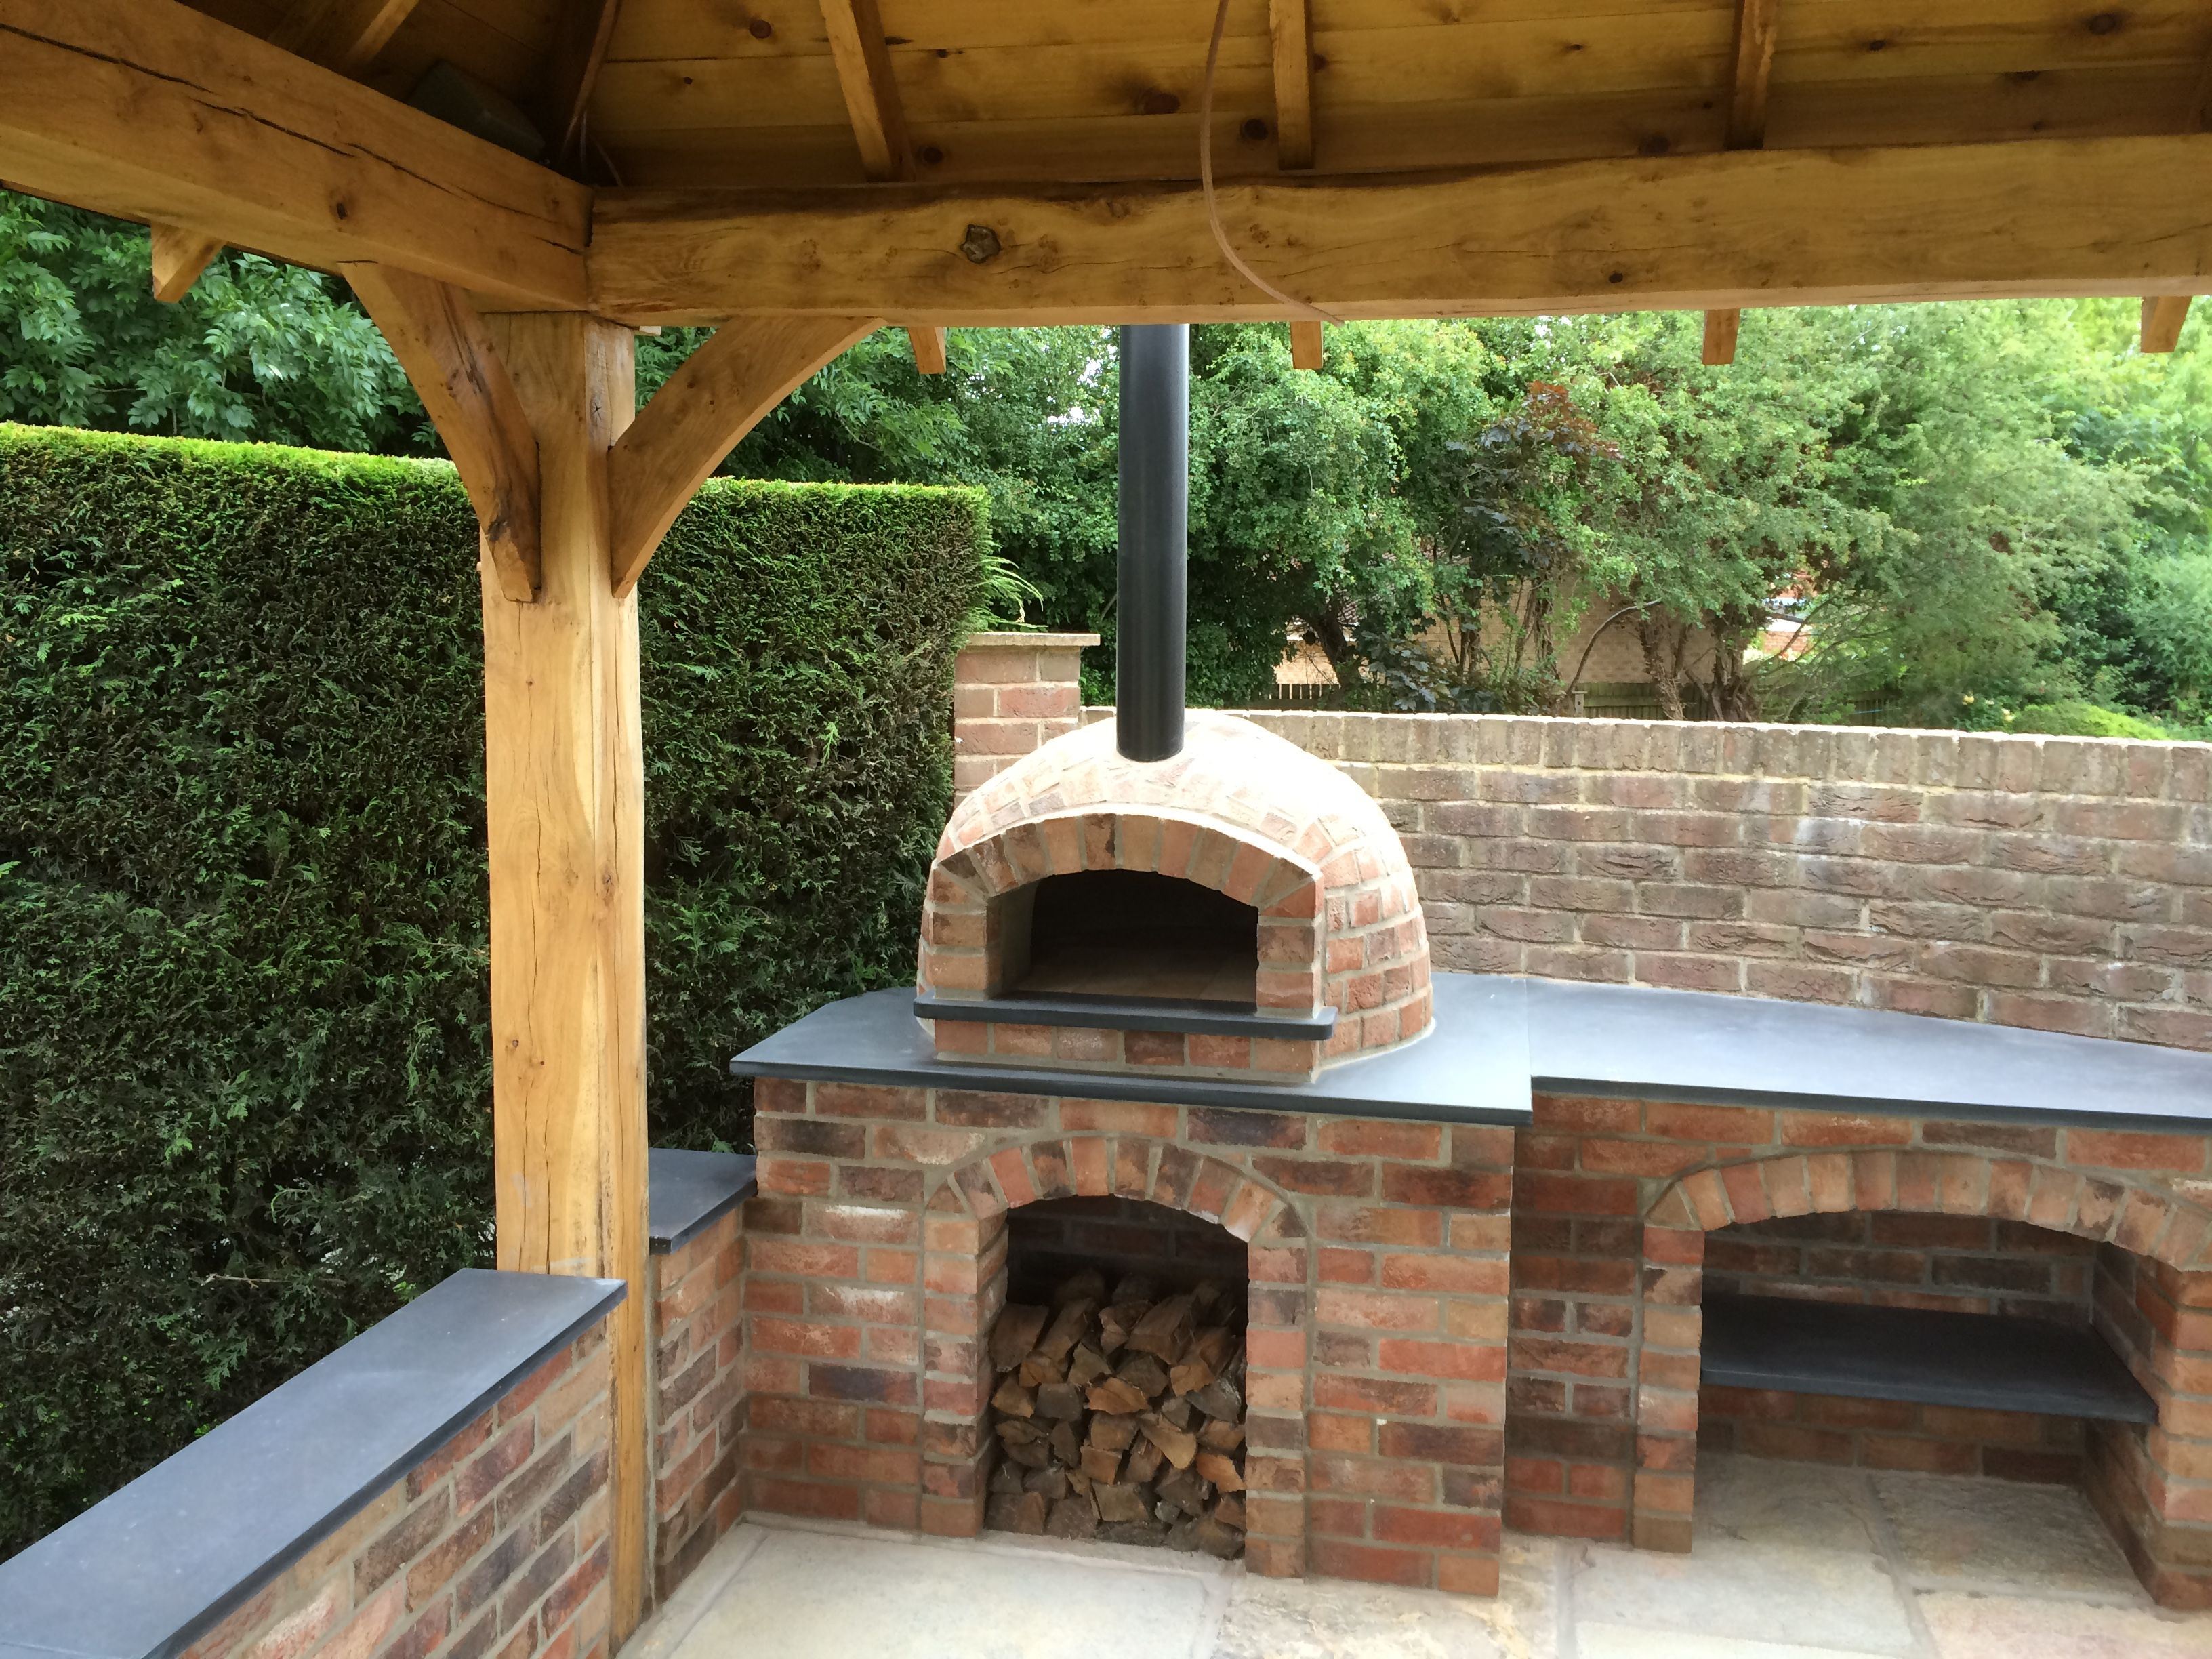 An Excellent Example Of A Pizza Oven With Granite Sides